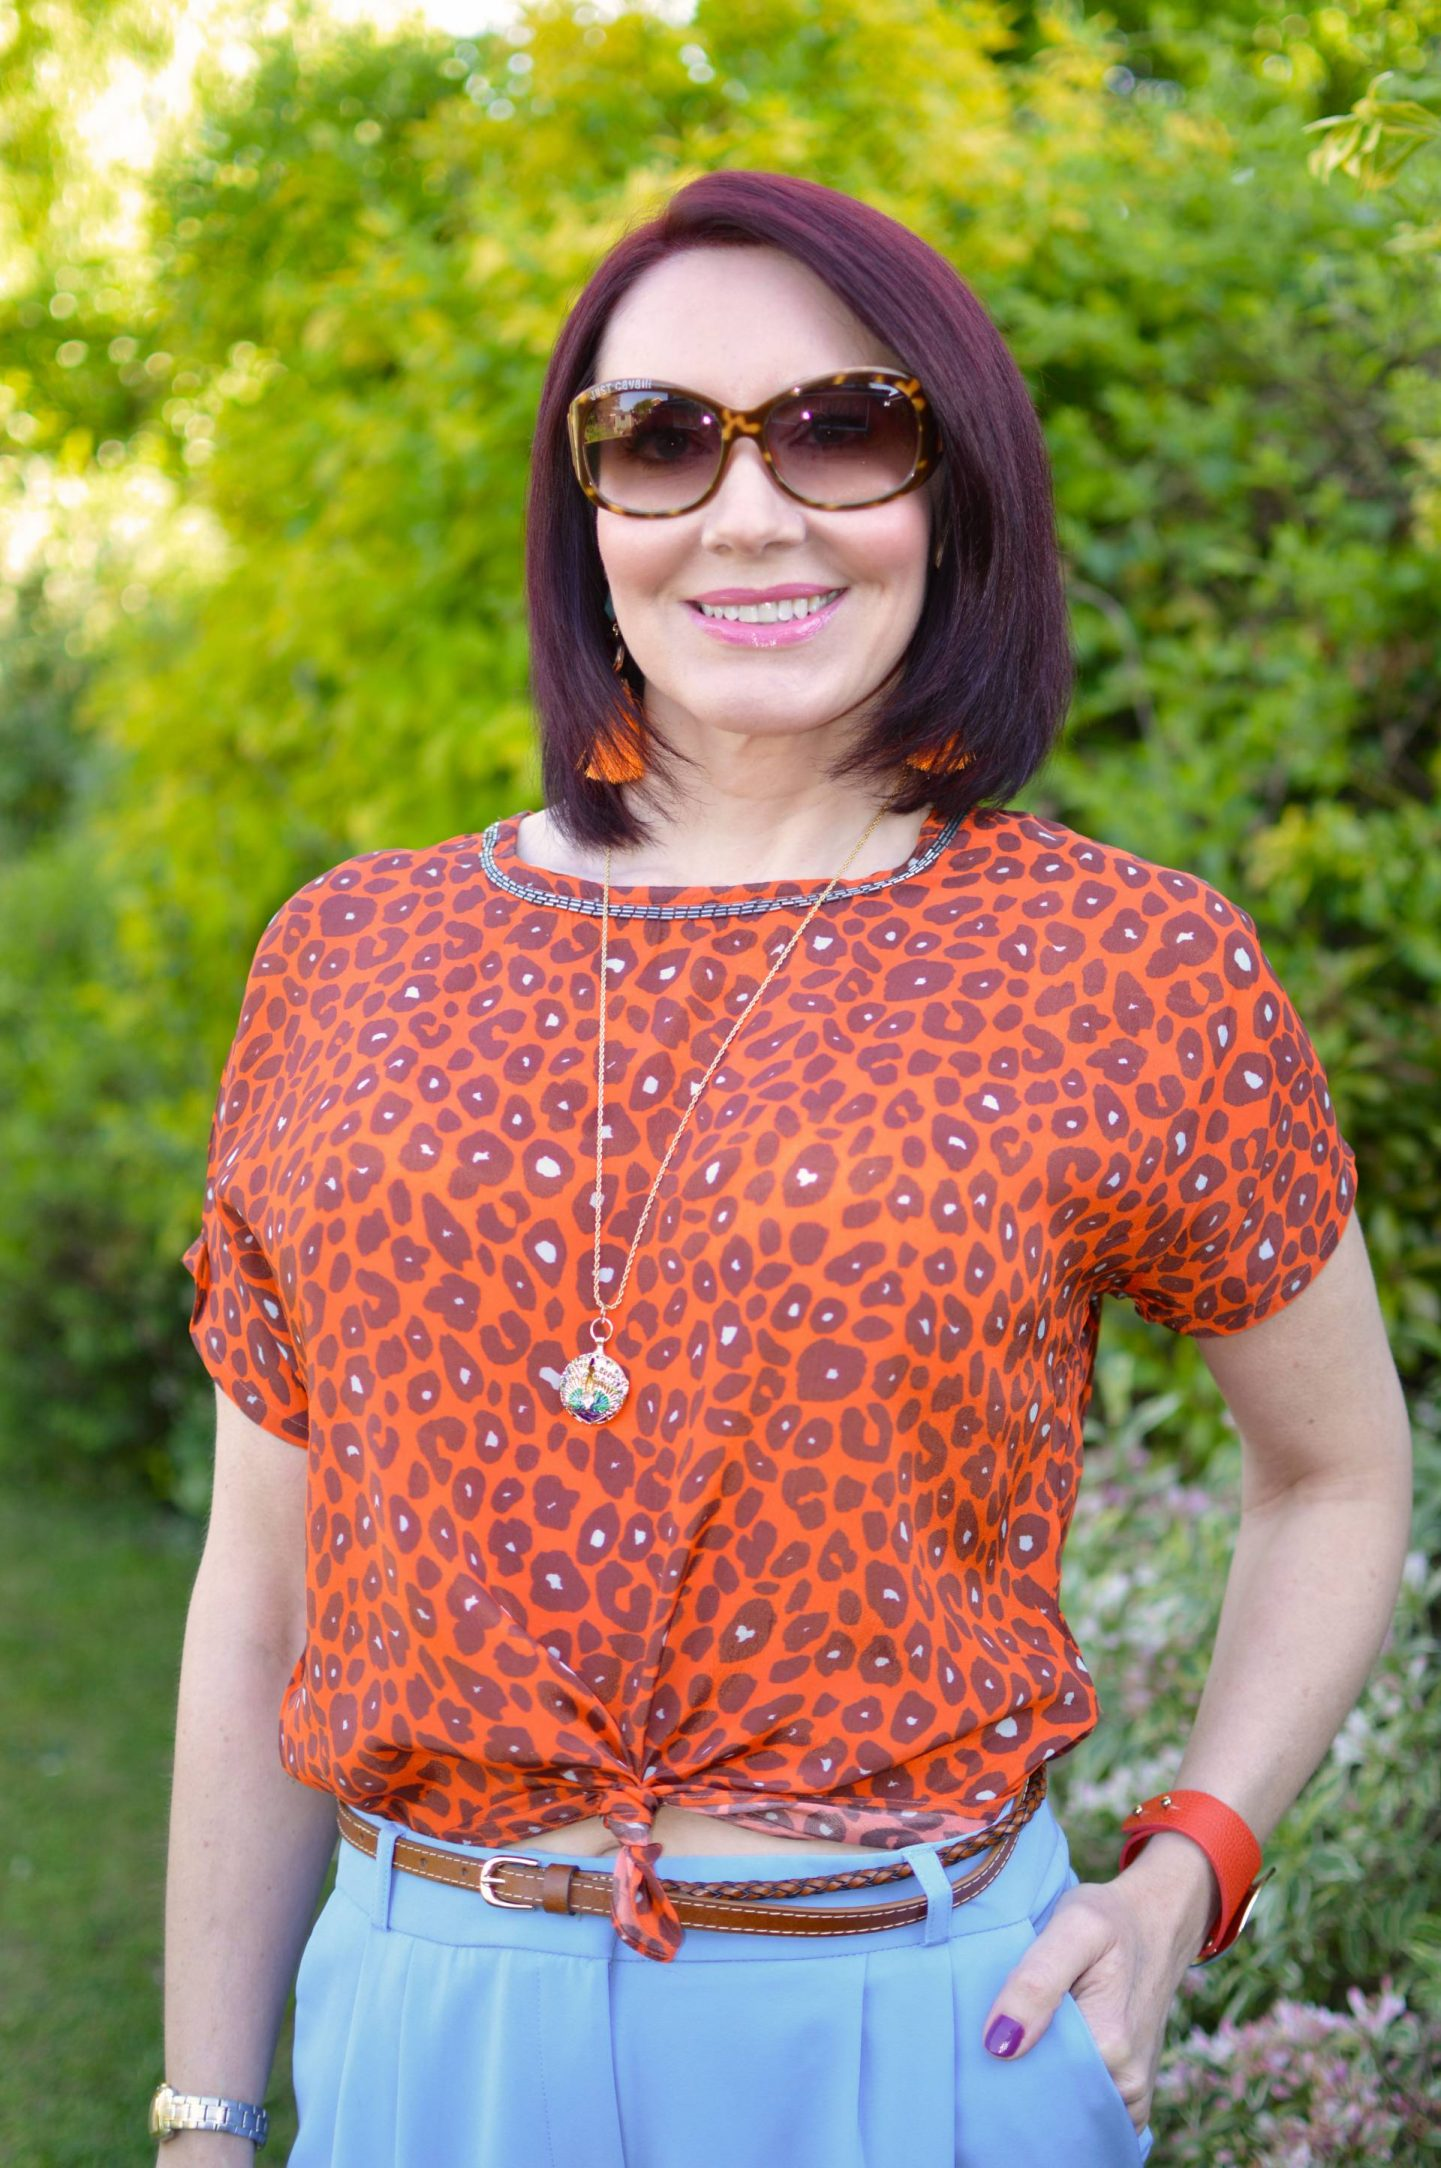 Blue and Bright Orange, Biba orange leopard print top, Asos orange velvet shoes